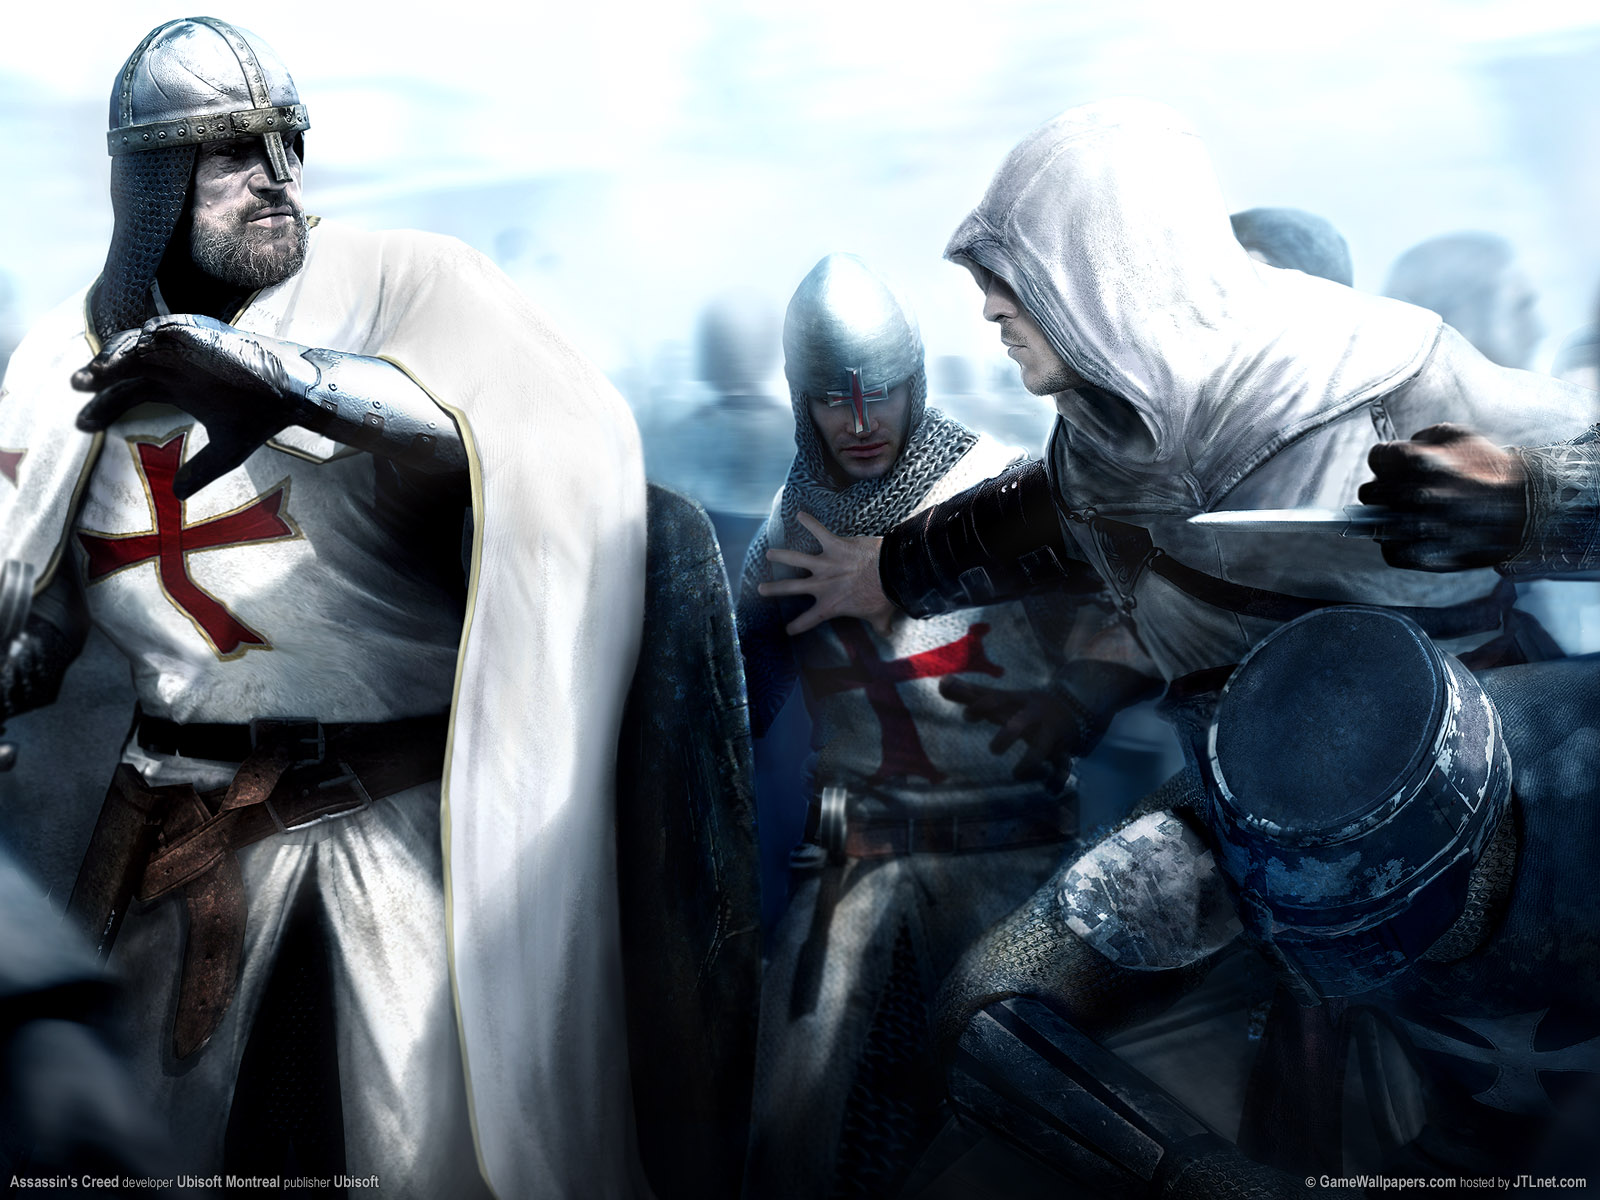 Awesome Hd Wallpapers Assassins Creed Brotherhood Game